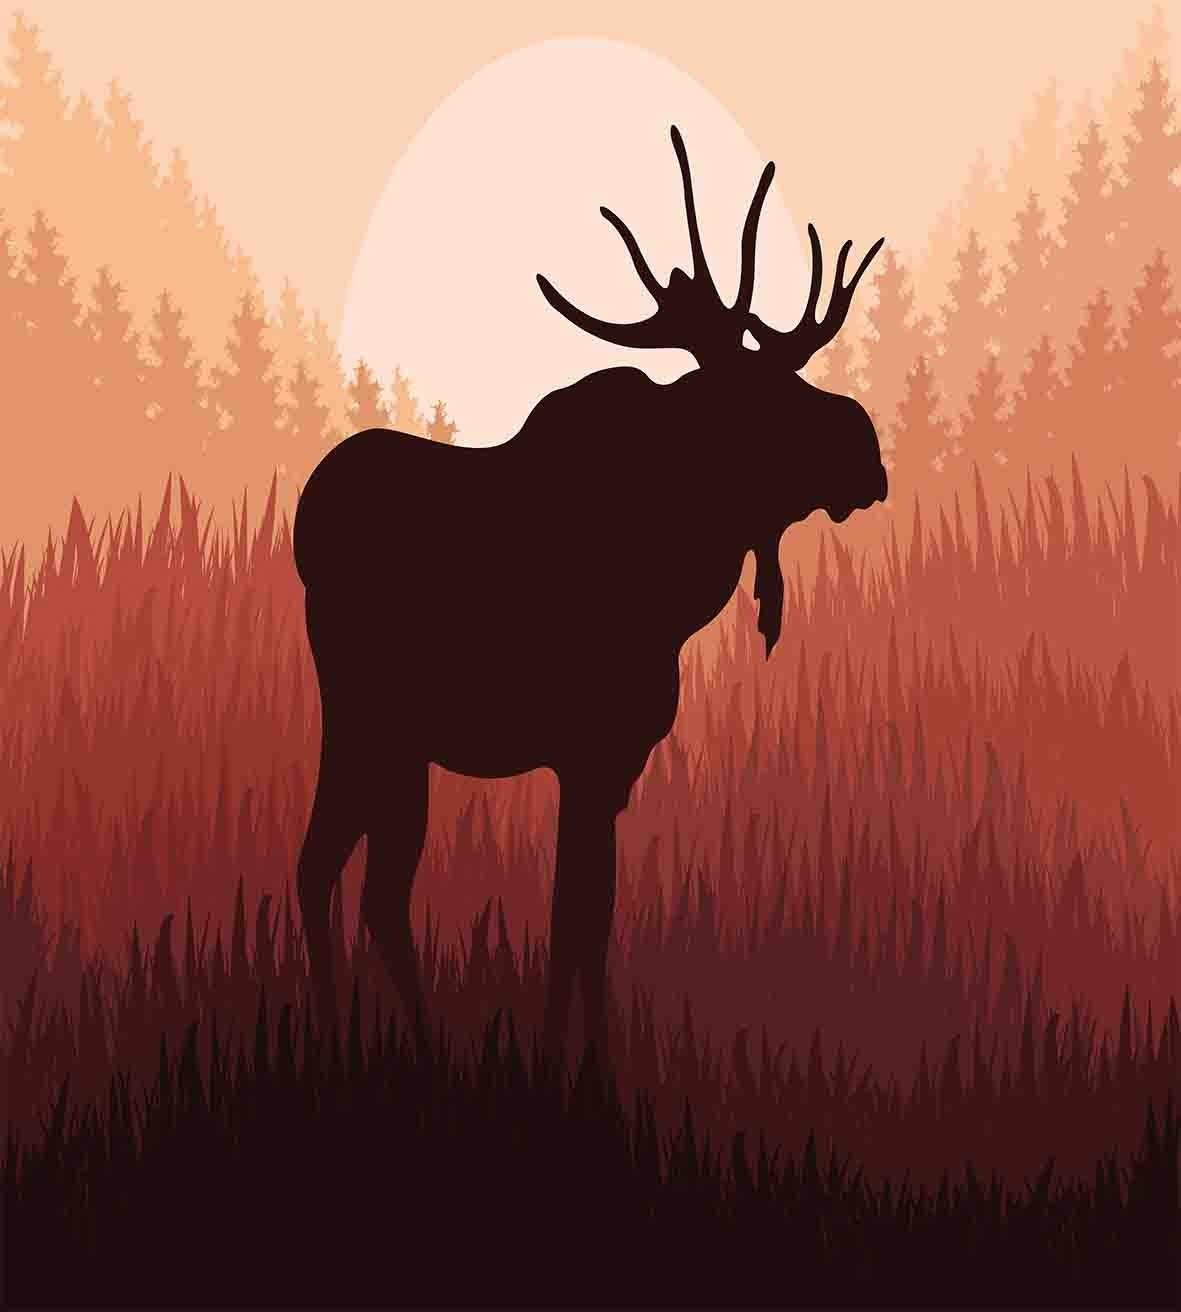 Duvet Cover Set Moose Antlers in Wild Alaska Forest Rusty Abstract Landscape Design Deer Theme Woods Ultra Soft Breathable Durable Twill Plush 4 Pcs Bedding Sets for Kids/Teens/Adults Twin Size by BABE MAPS (Image #2)